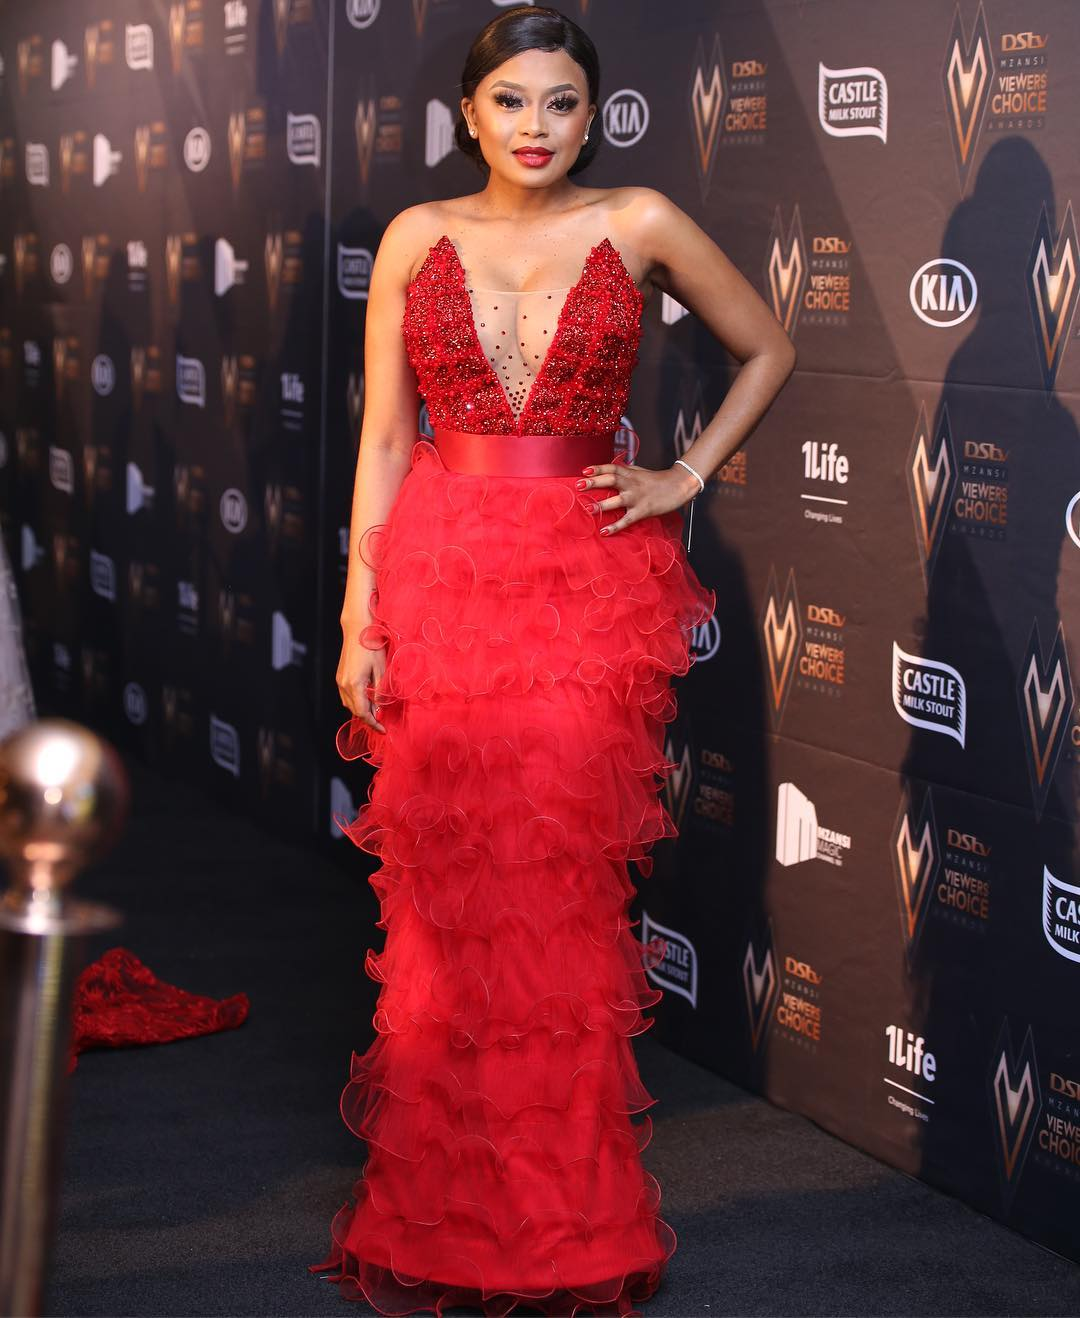 DSTV Mzansi Viewers' Choice Awards Red Carpet And Winners